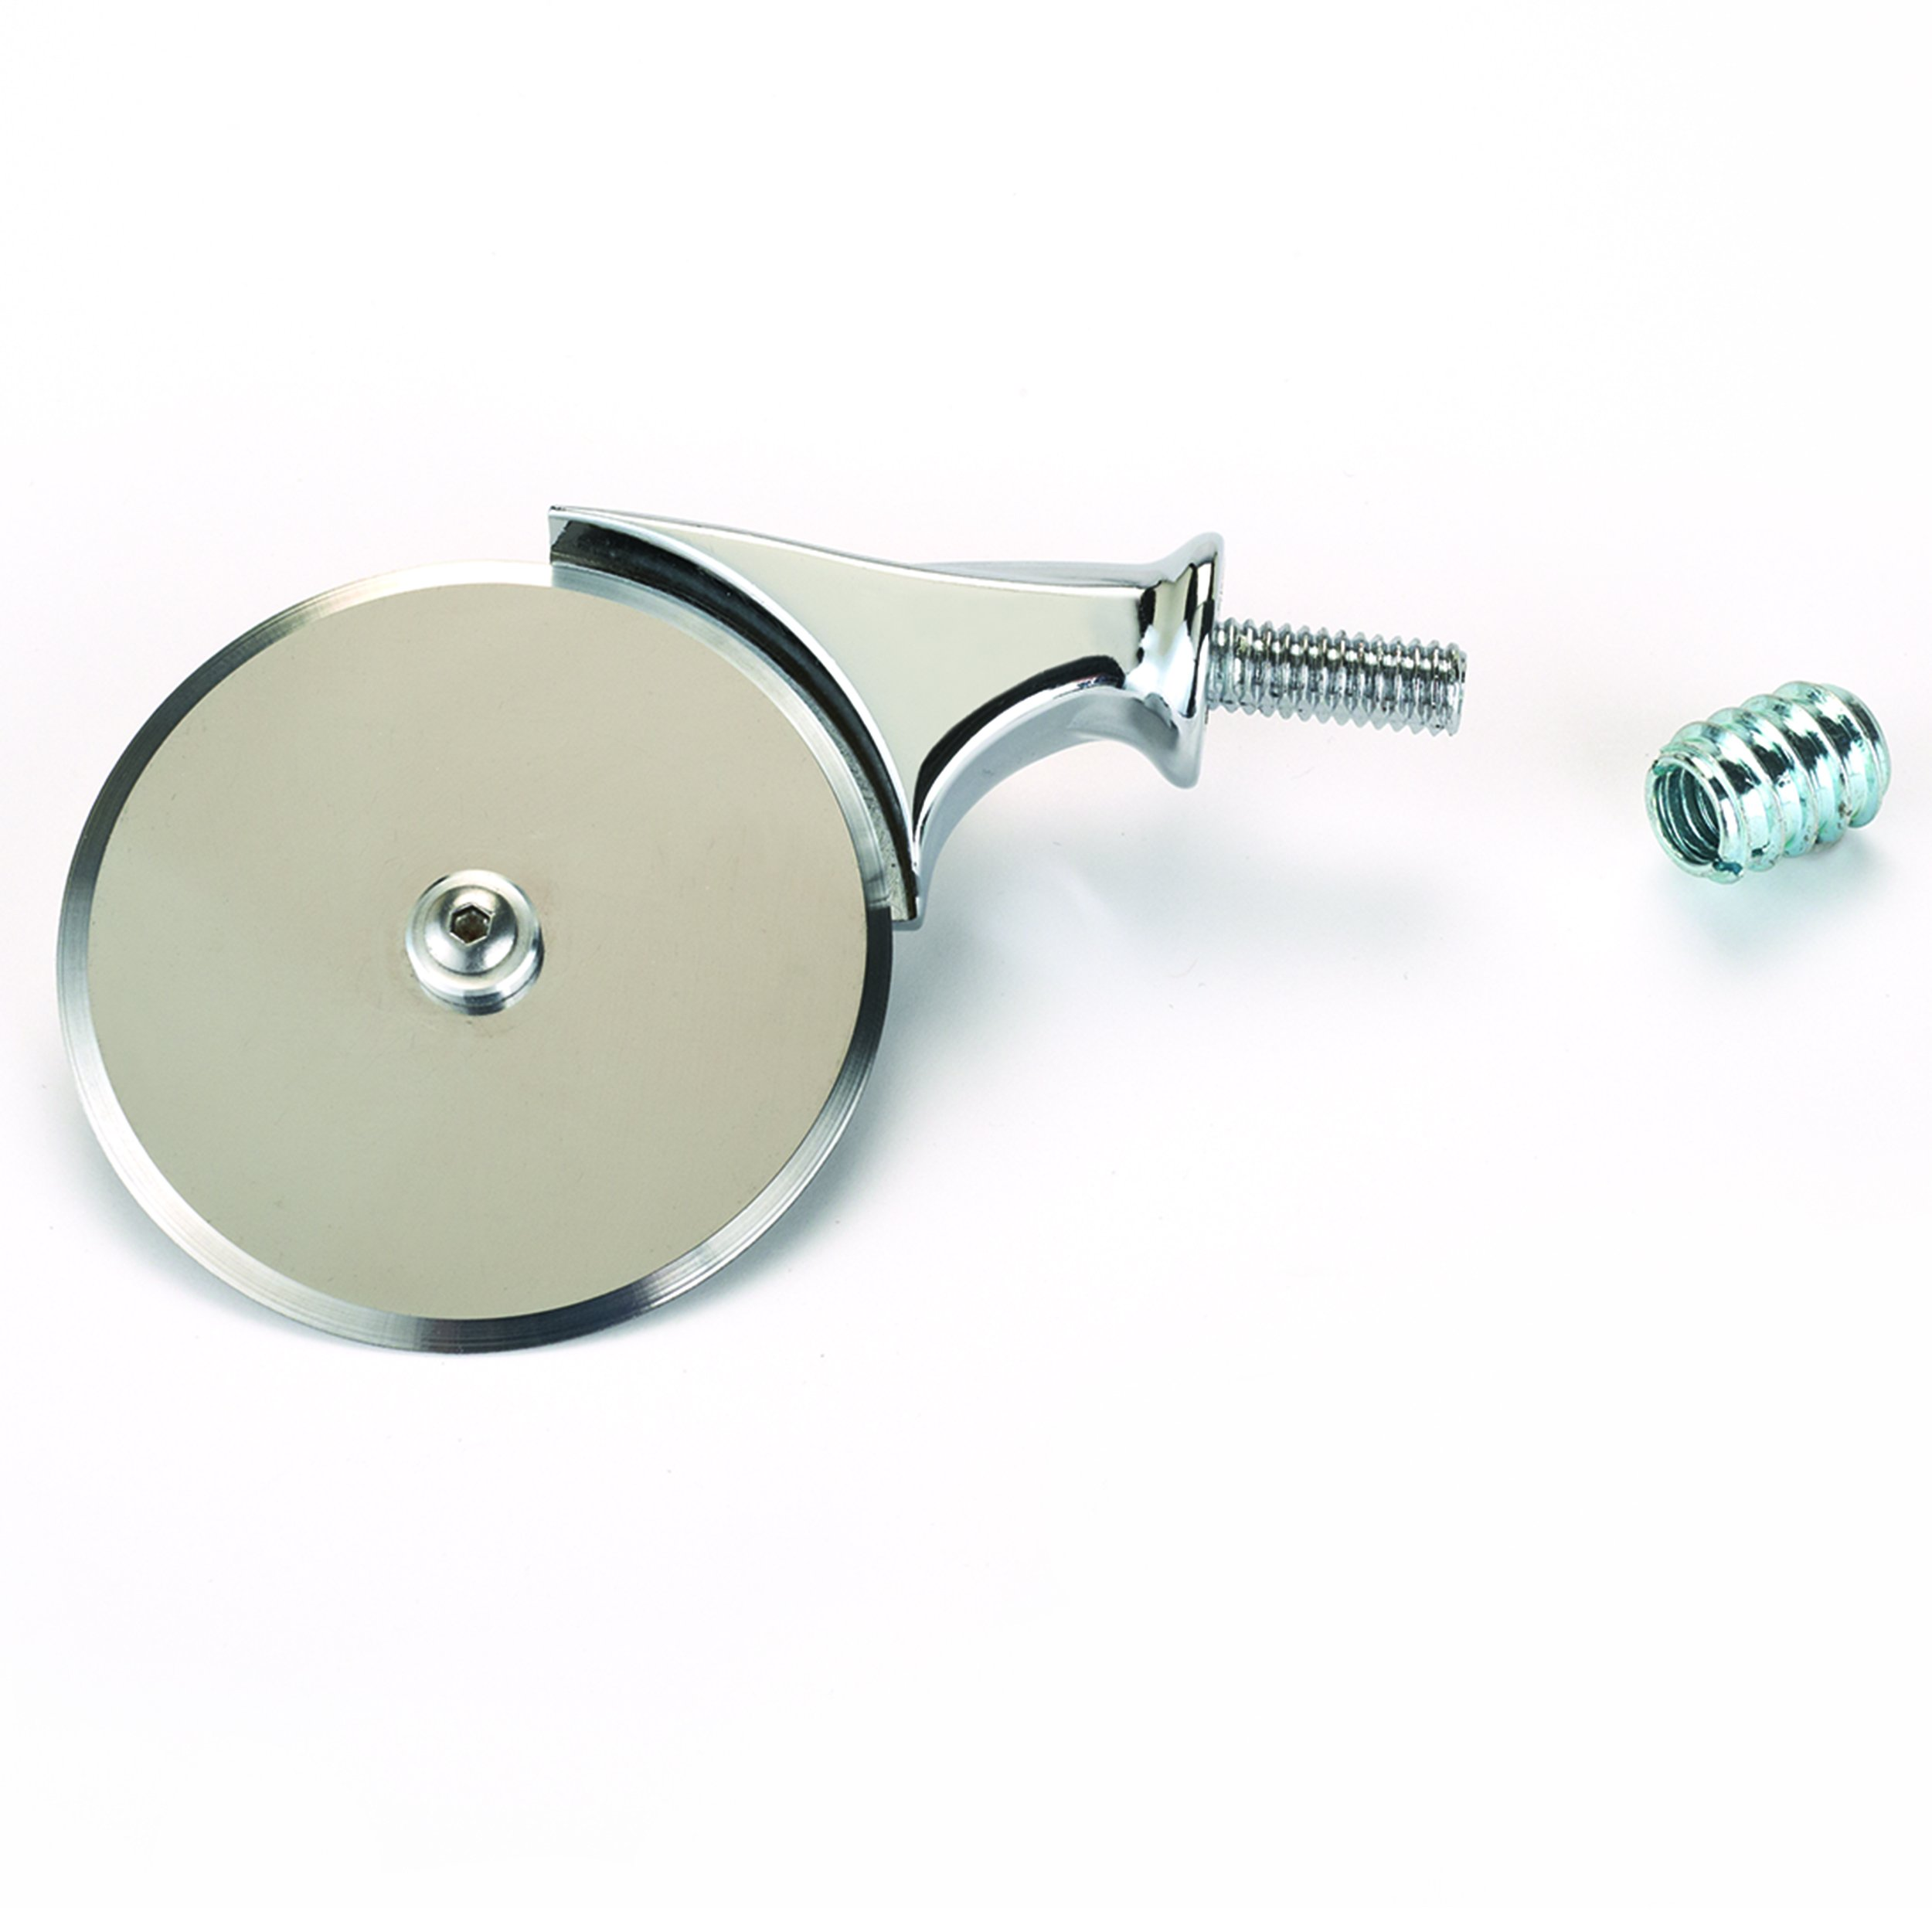 Woodturning Project Kit for 2-1/2'' Miniature Pizza Cutter, Chrome